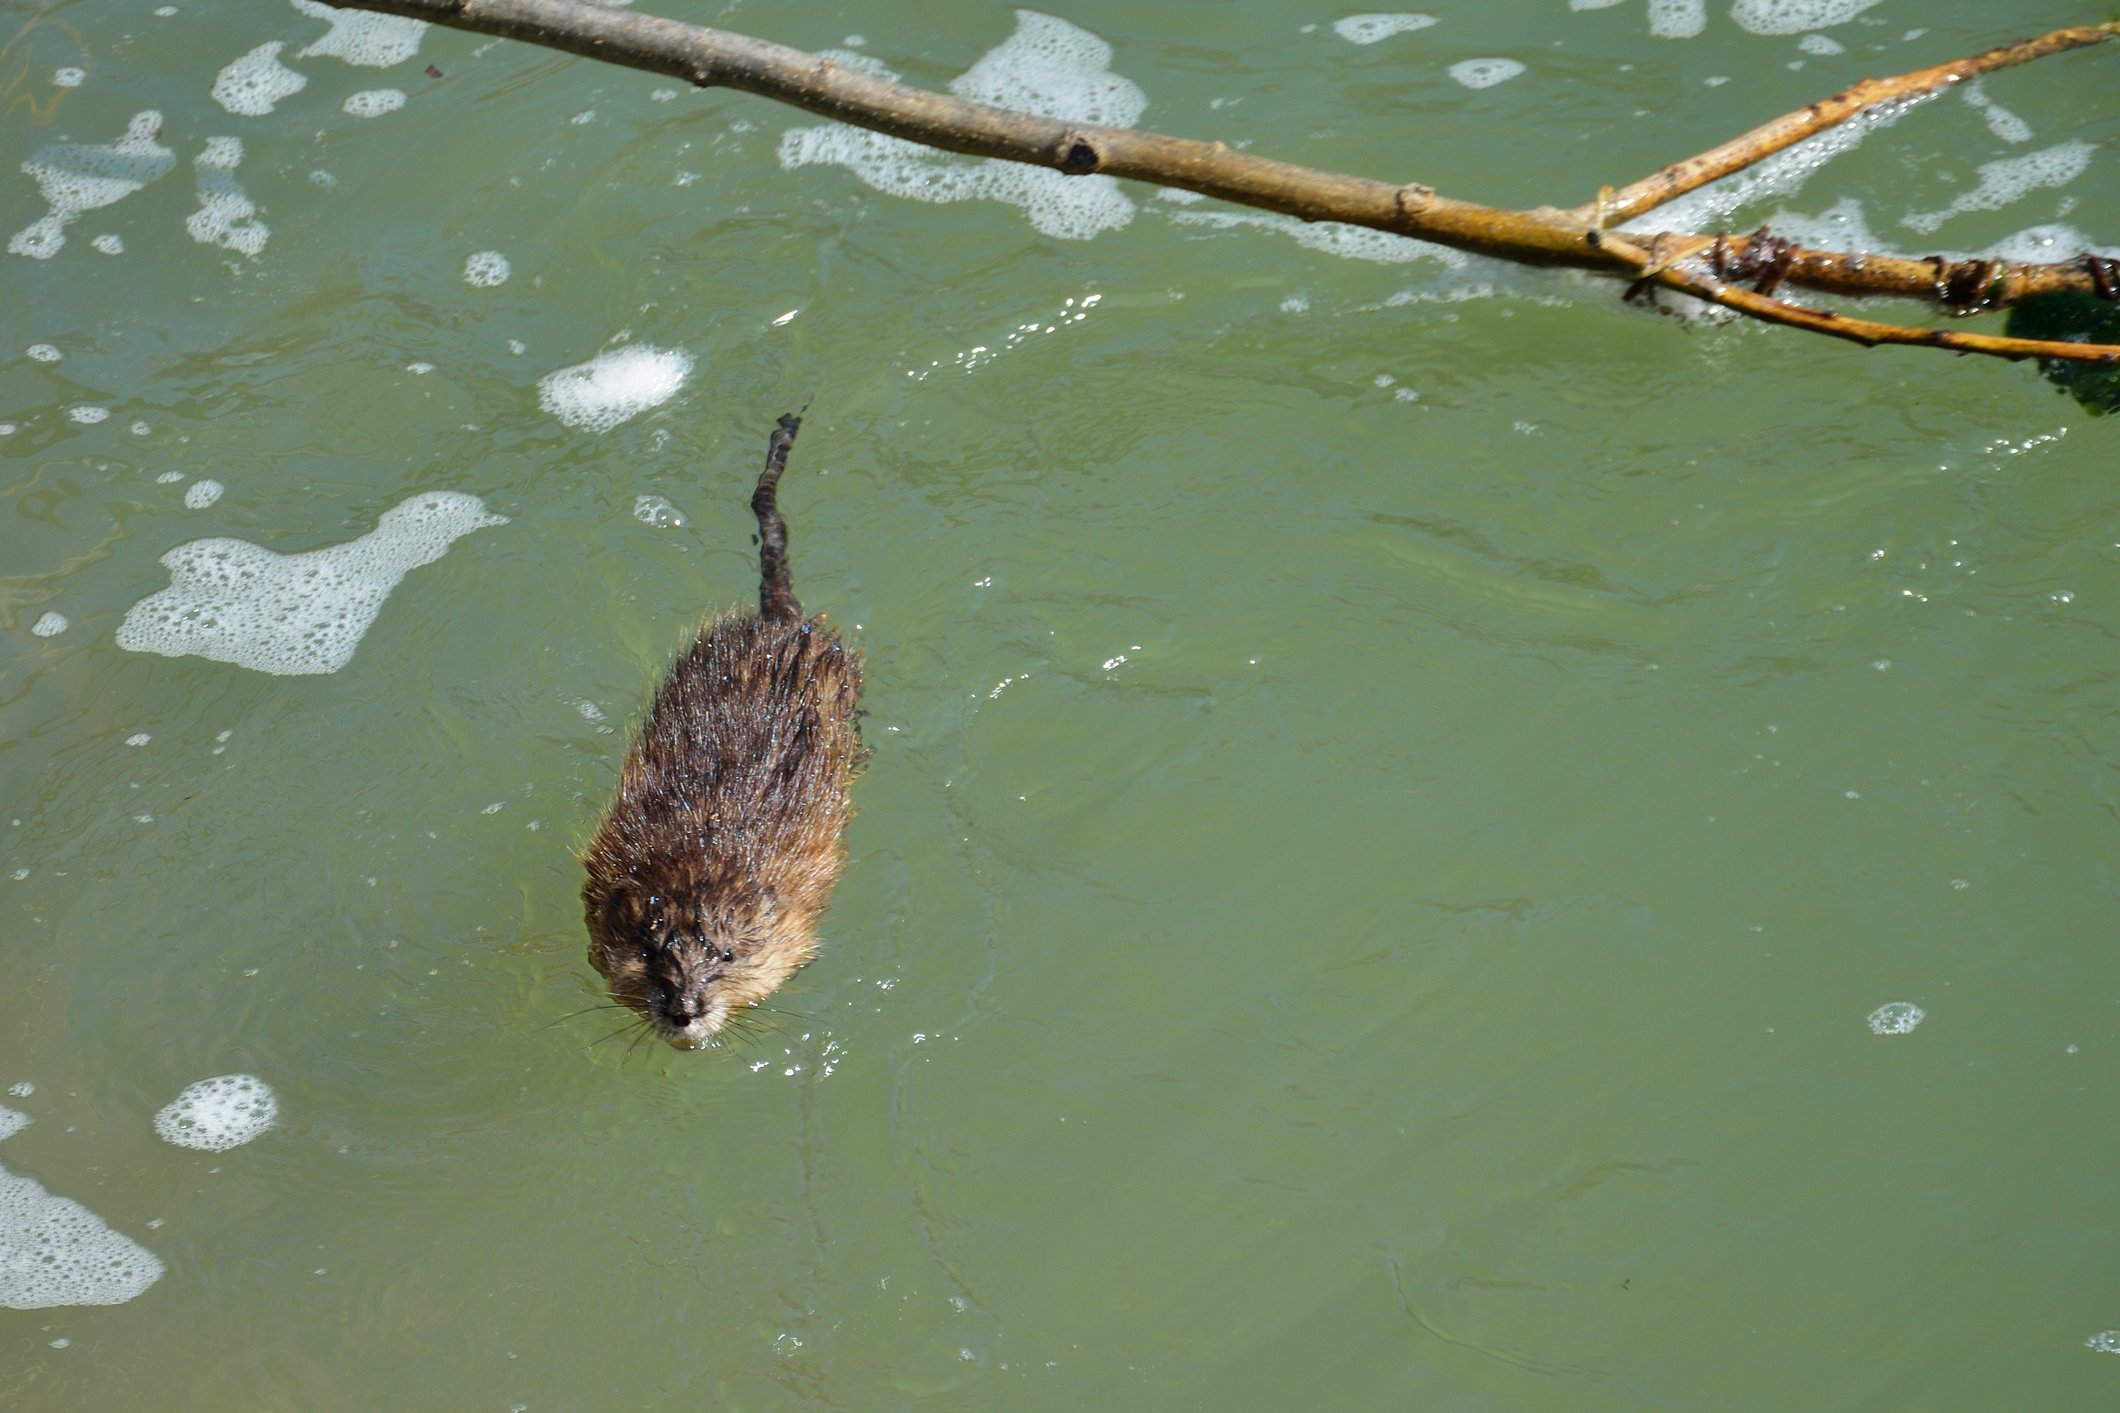 Photo: Muskrat swimming in Mammoth Spring, Arkansas - www.ozarkswalkabout.com